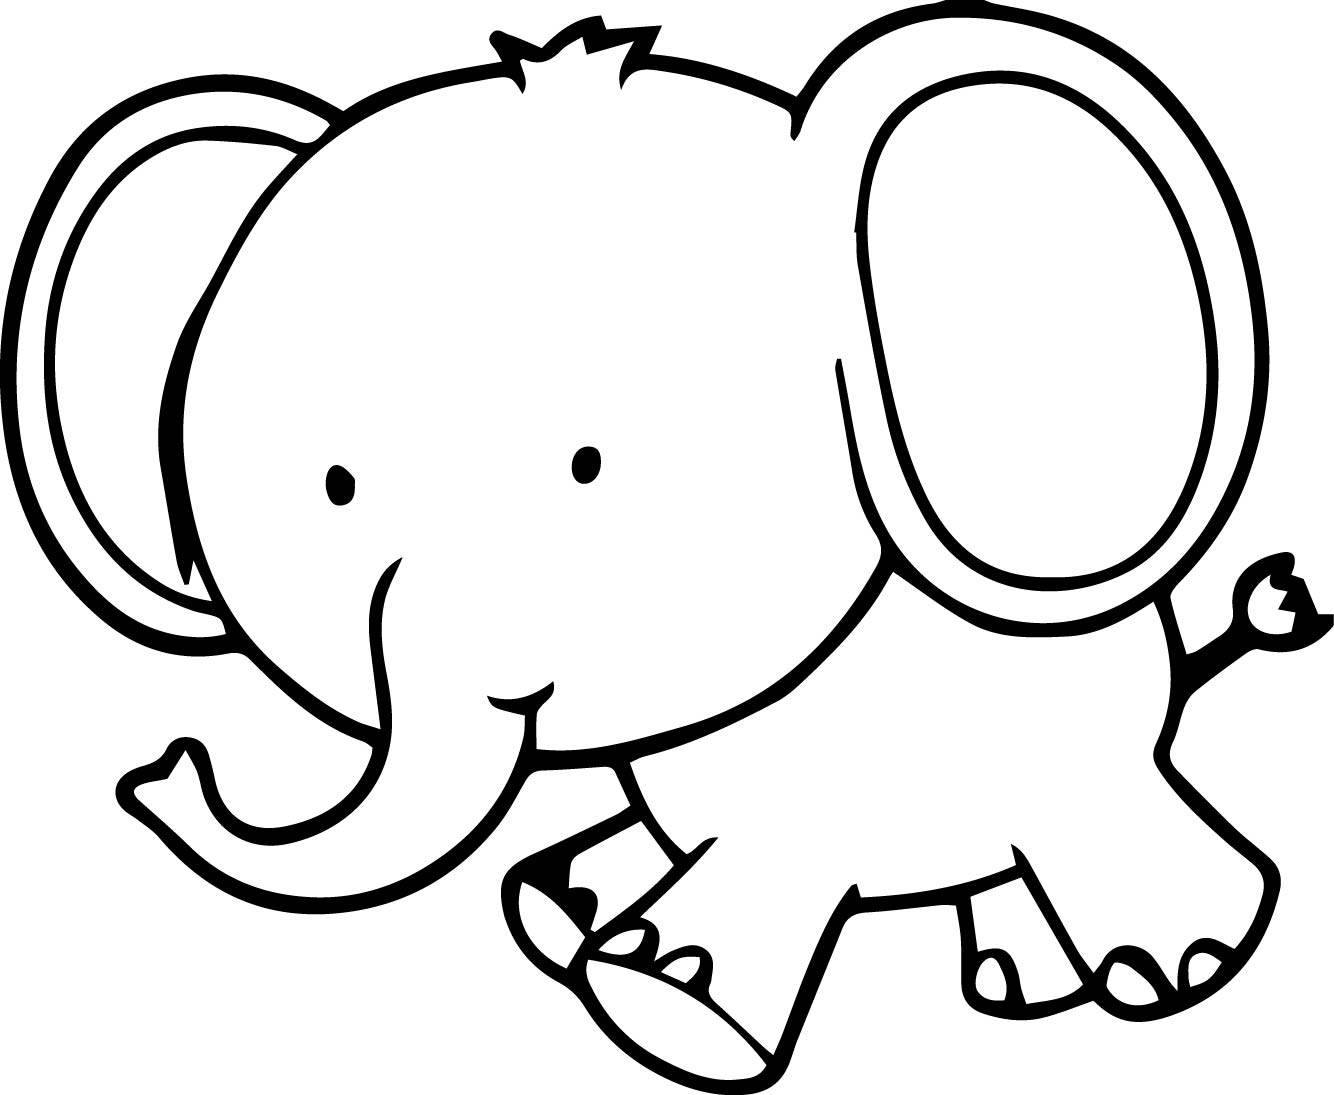 elephant coloring pages elephant coloring pages free download on clipartmag coloring elephant pages